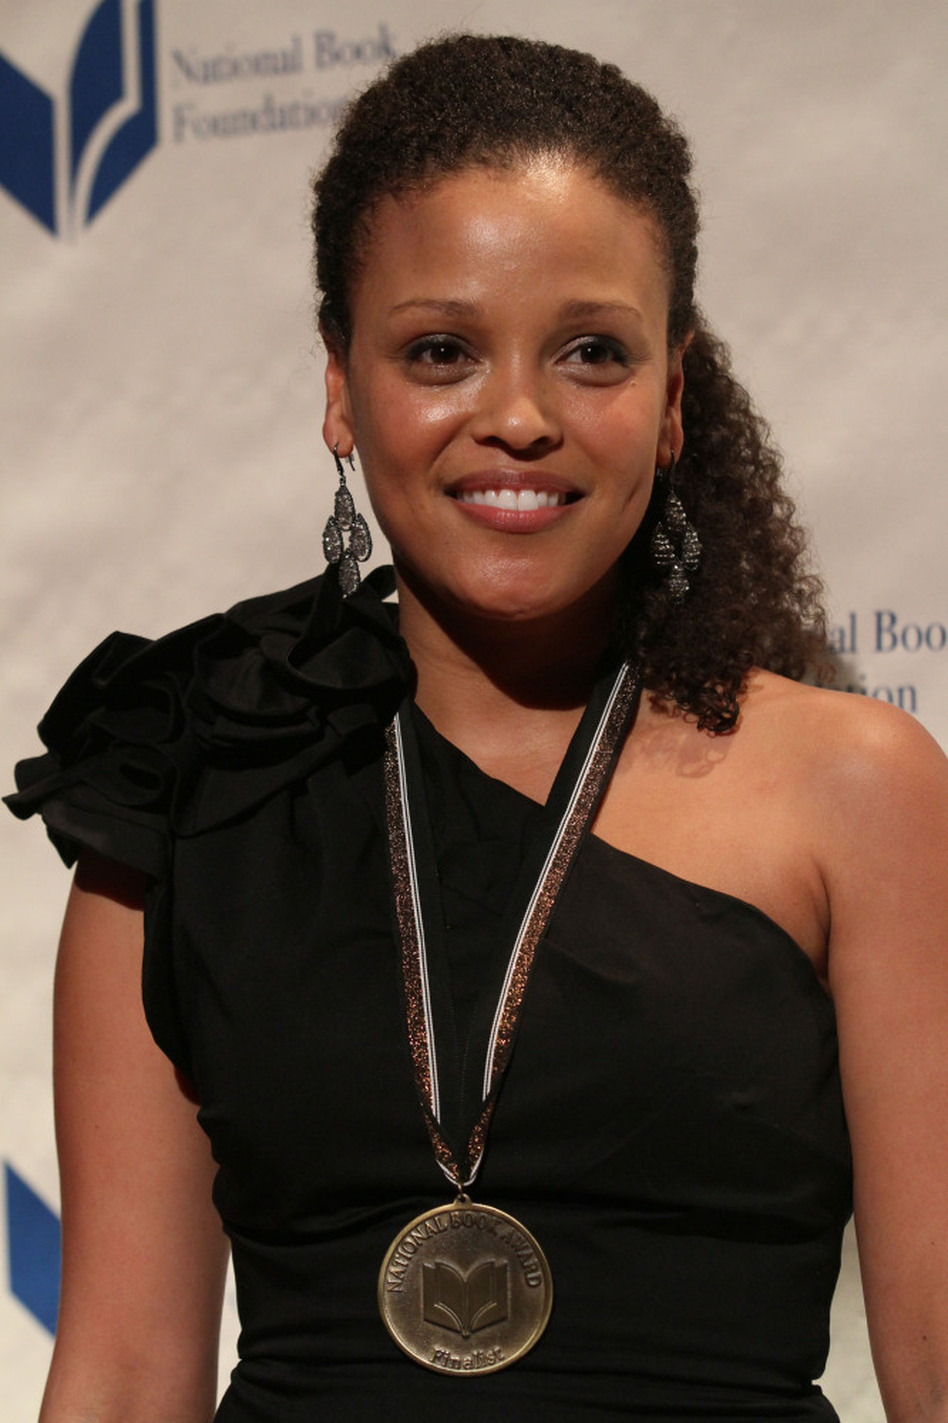 Jesmyn Ward, winner of the National Book Award for Fiction for her book <em>Salvage the Bones</em>, poses at the National Book Awards Wednesday night.